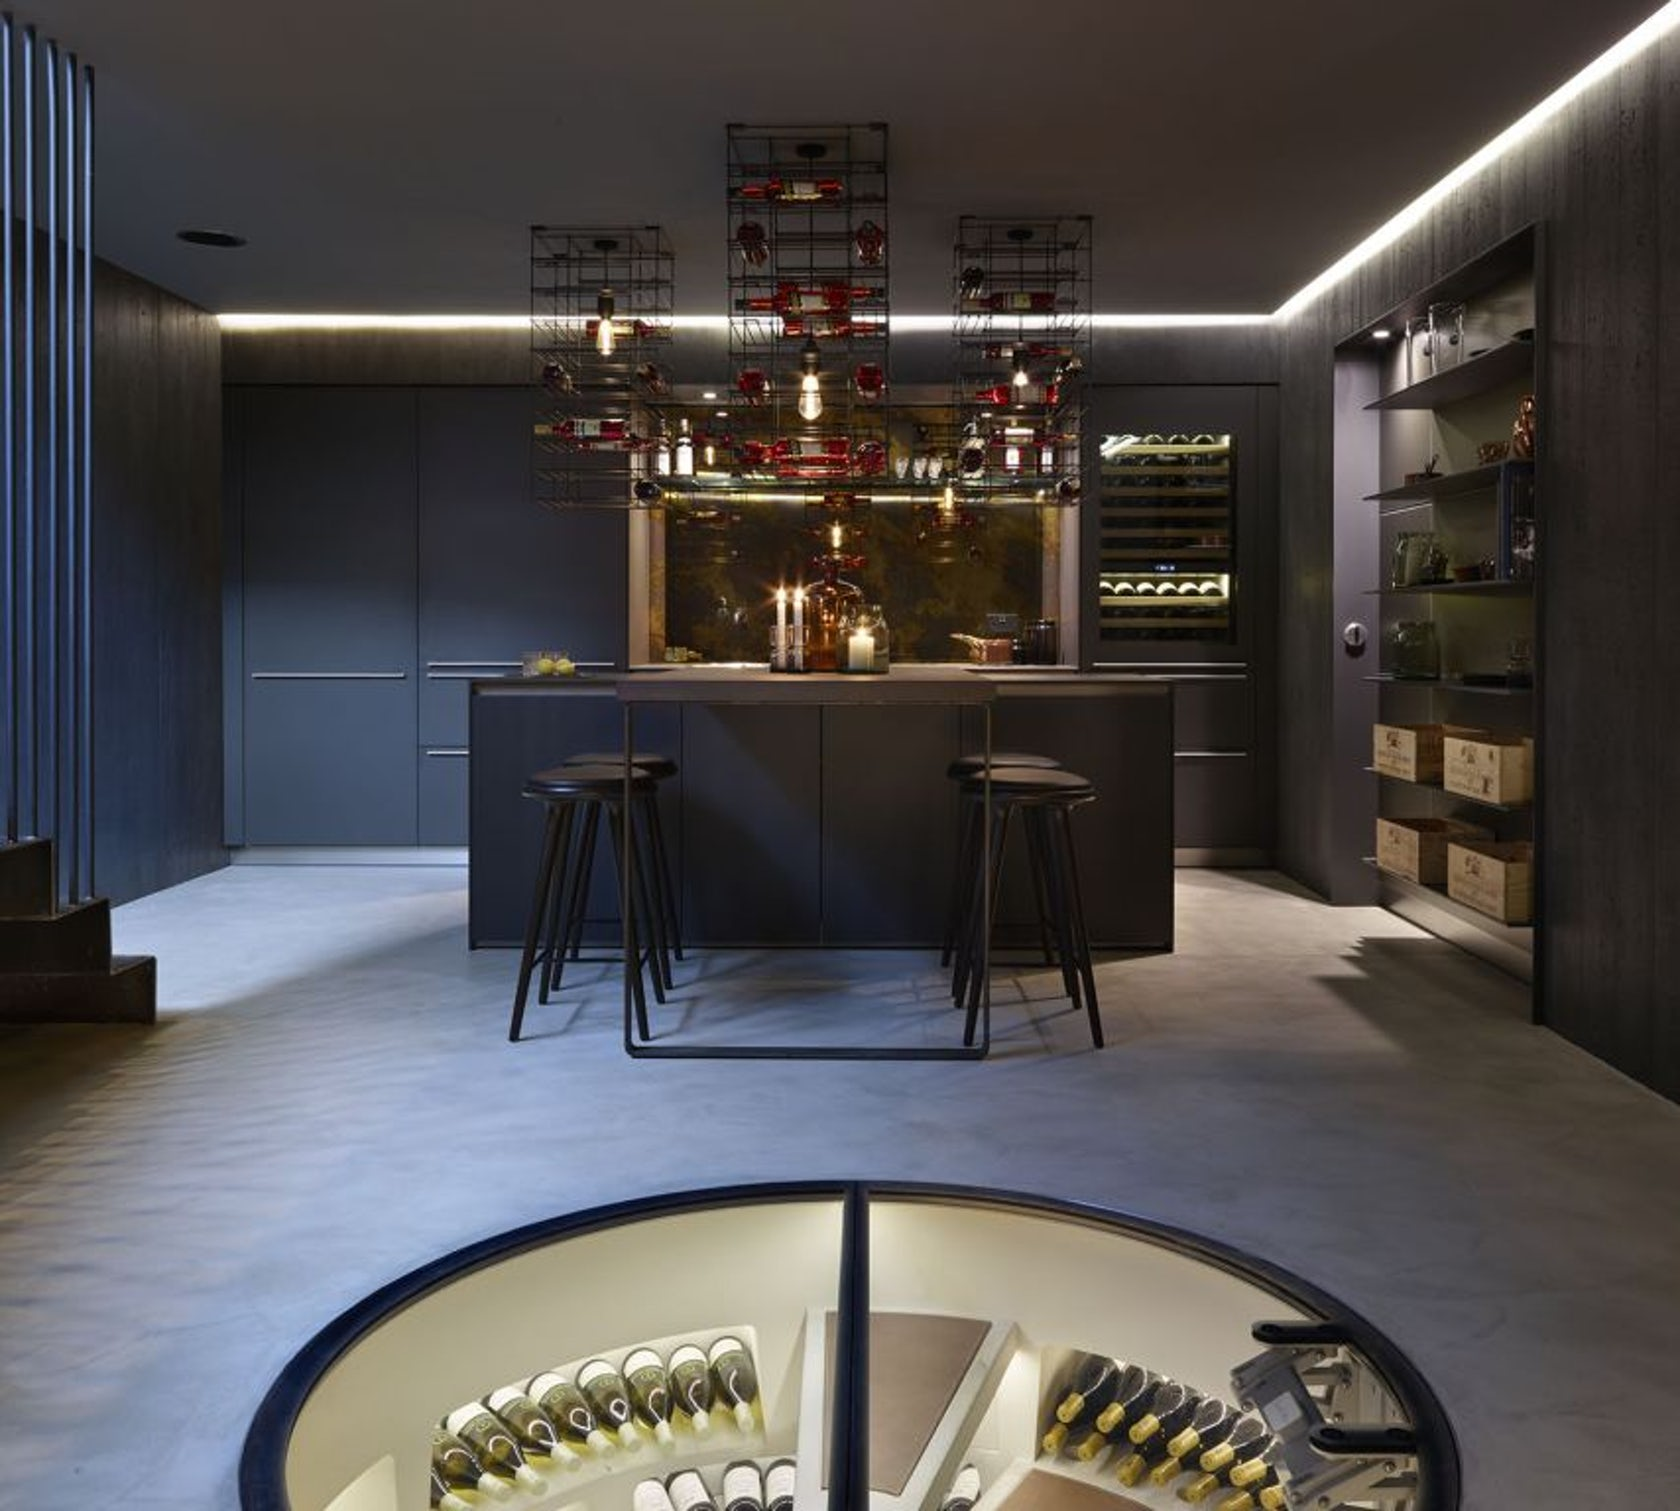 Kitchen Showrooms Nyc: Kitchen Architecture's Bulthaup Showroom In London